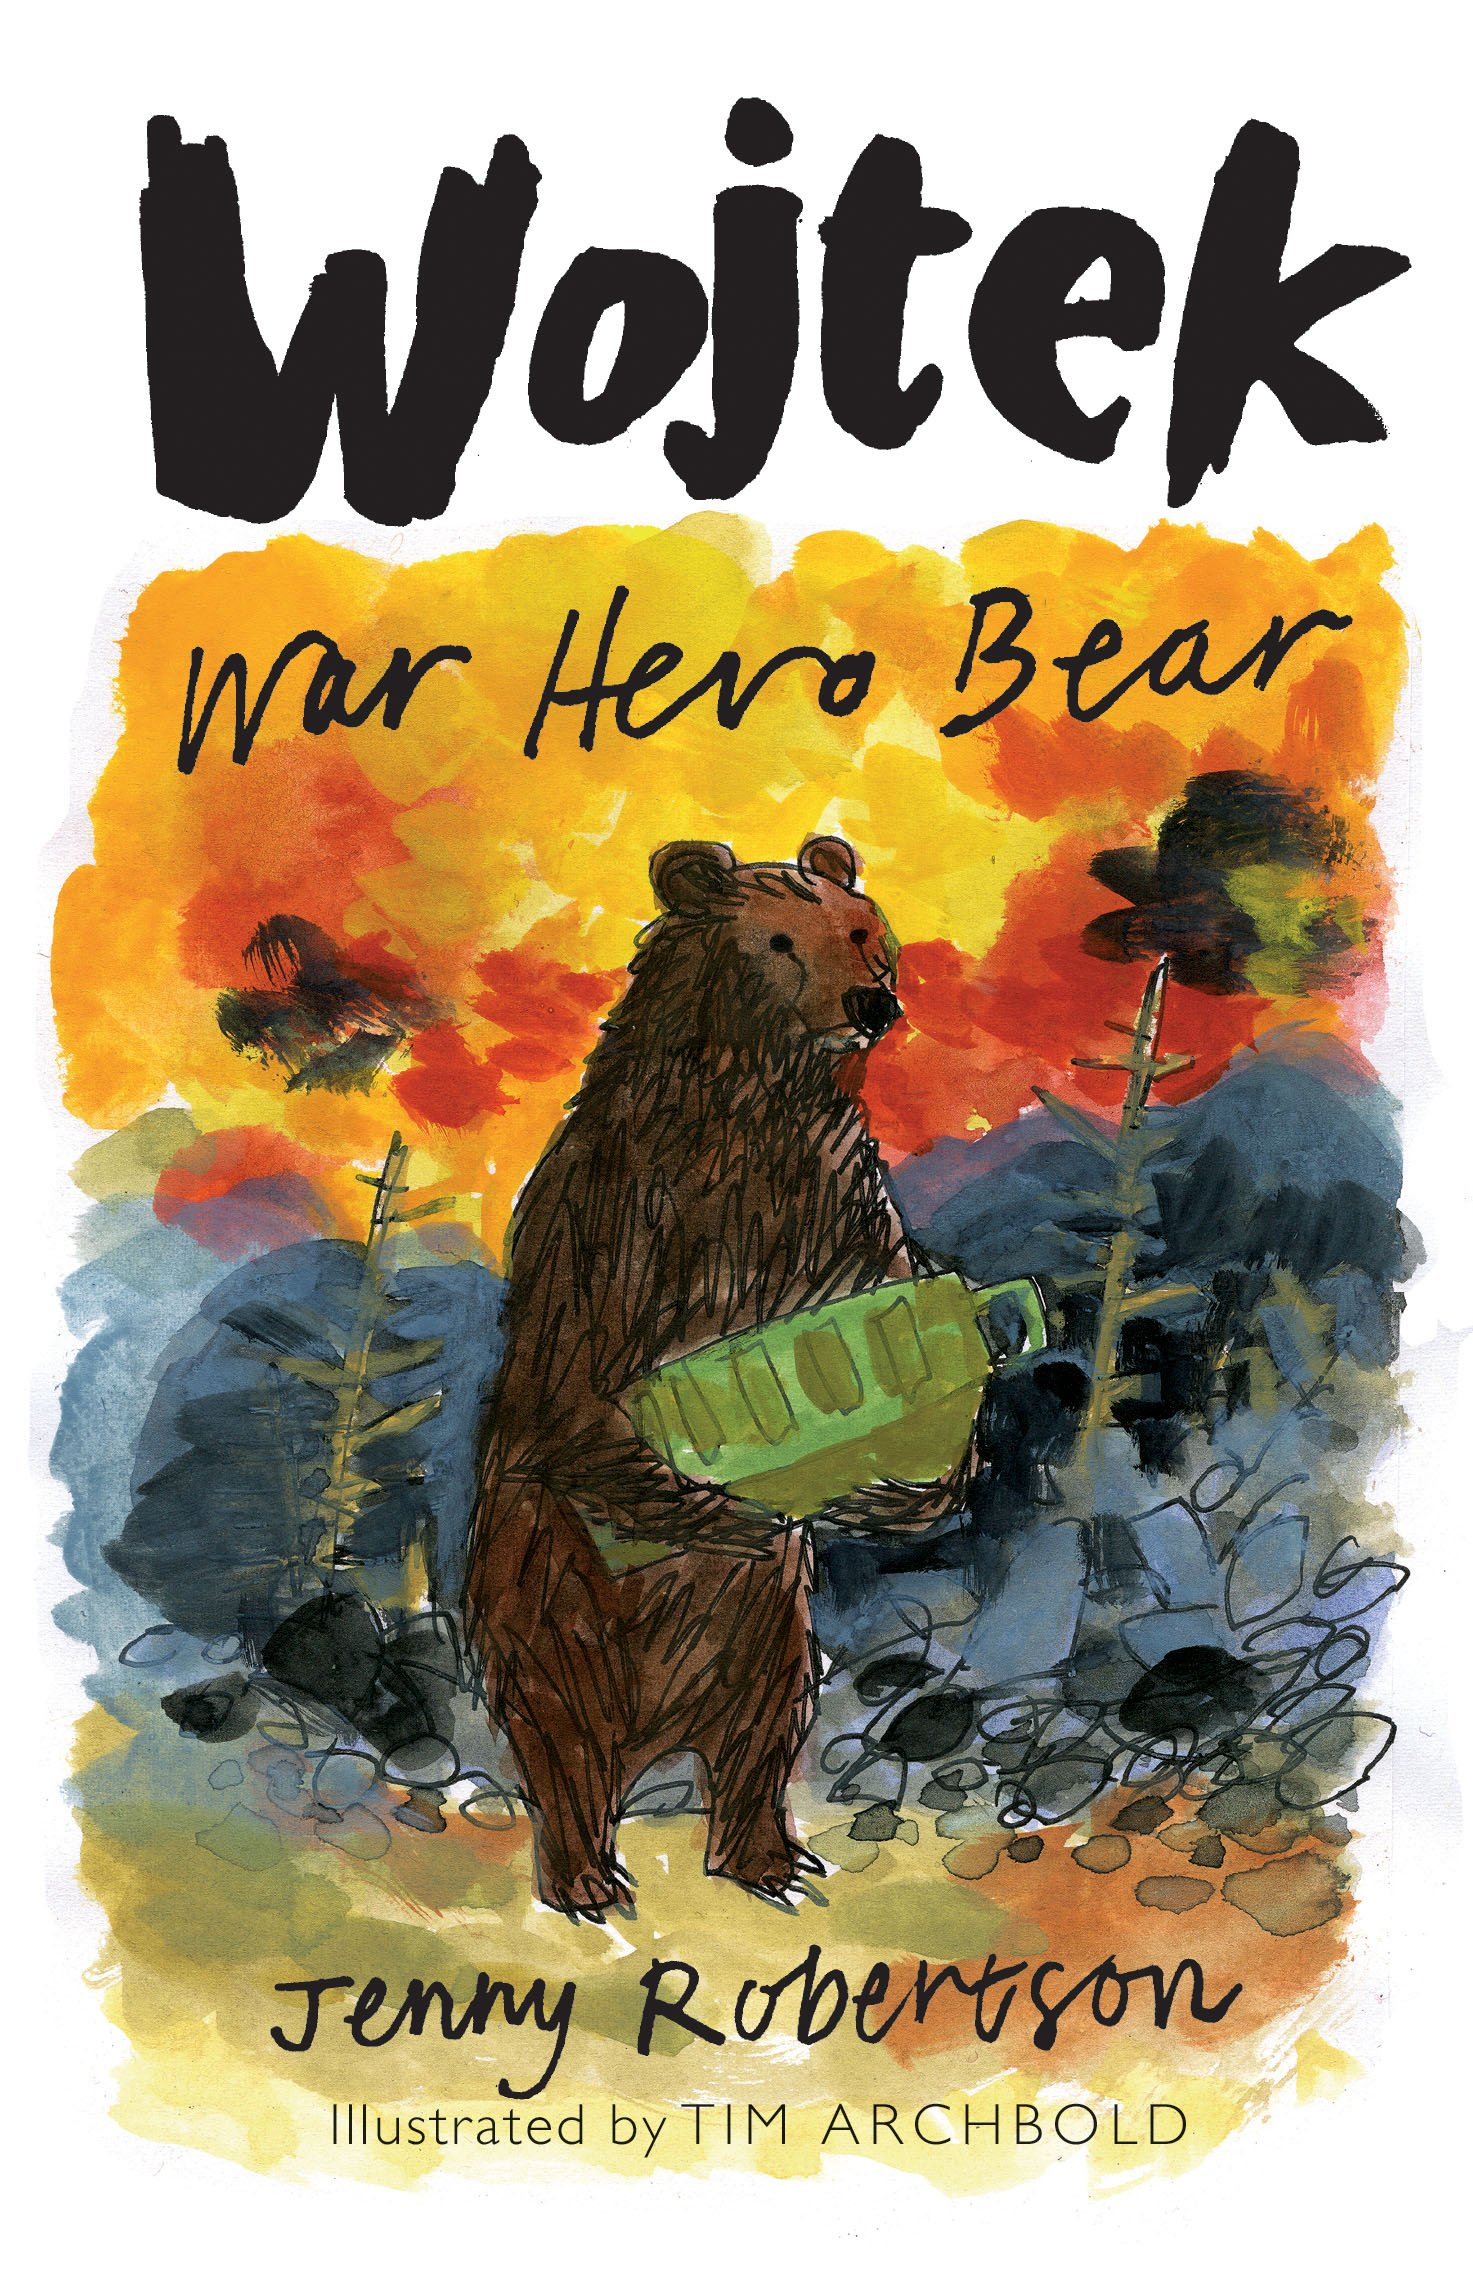 War Hero Bear: Amazon.co.uk: Jenny Robertson, Tim Archbold ...